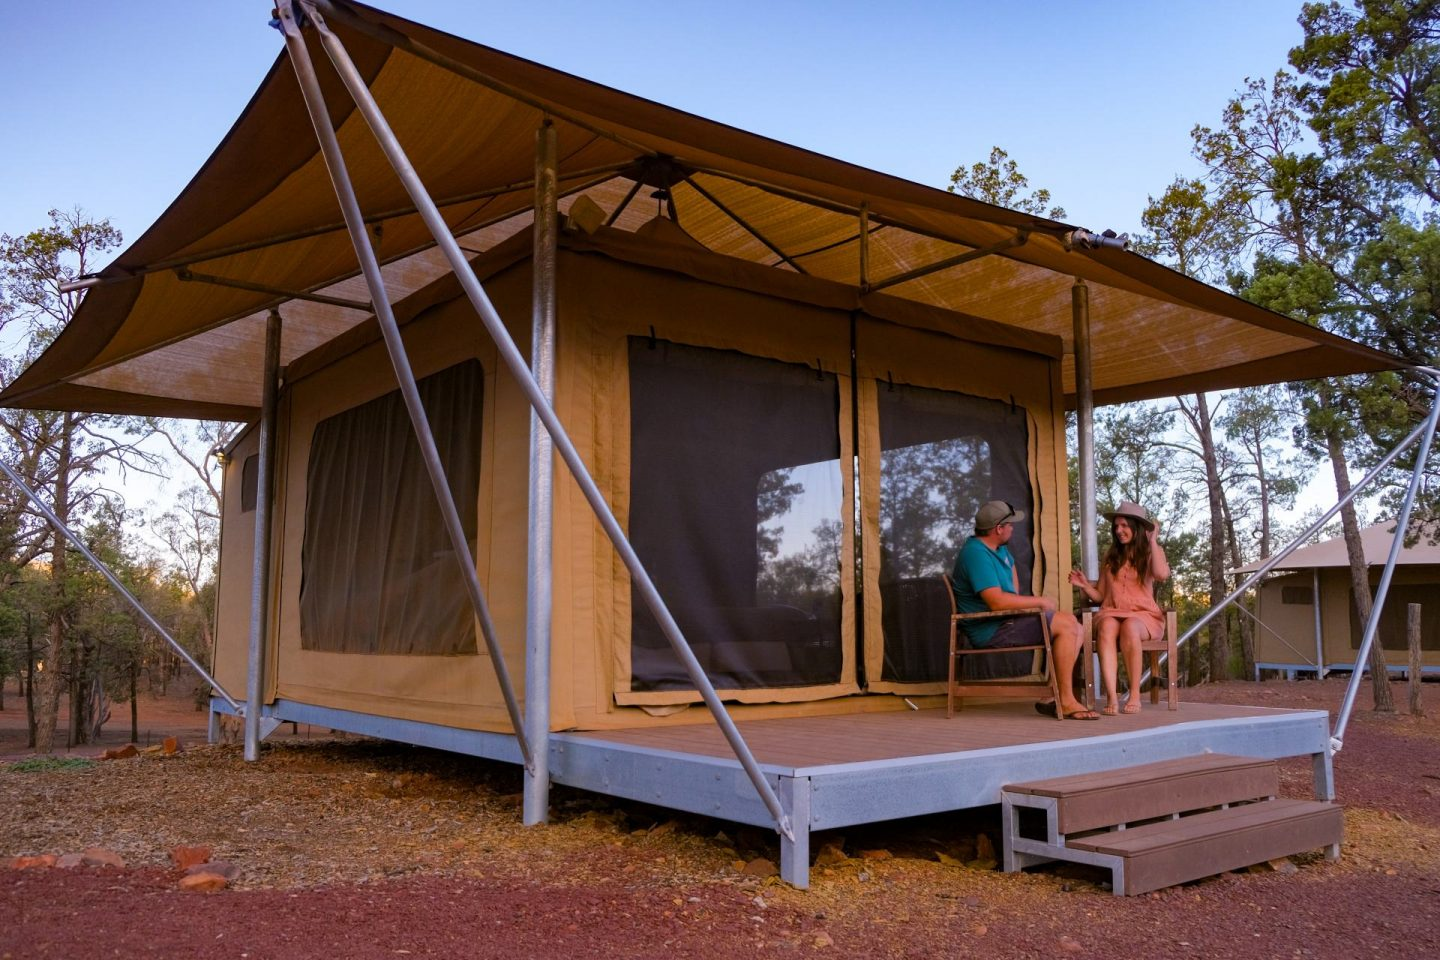 The Best Flinders Ranges Camping at Wilpena Pound